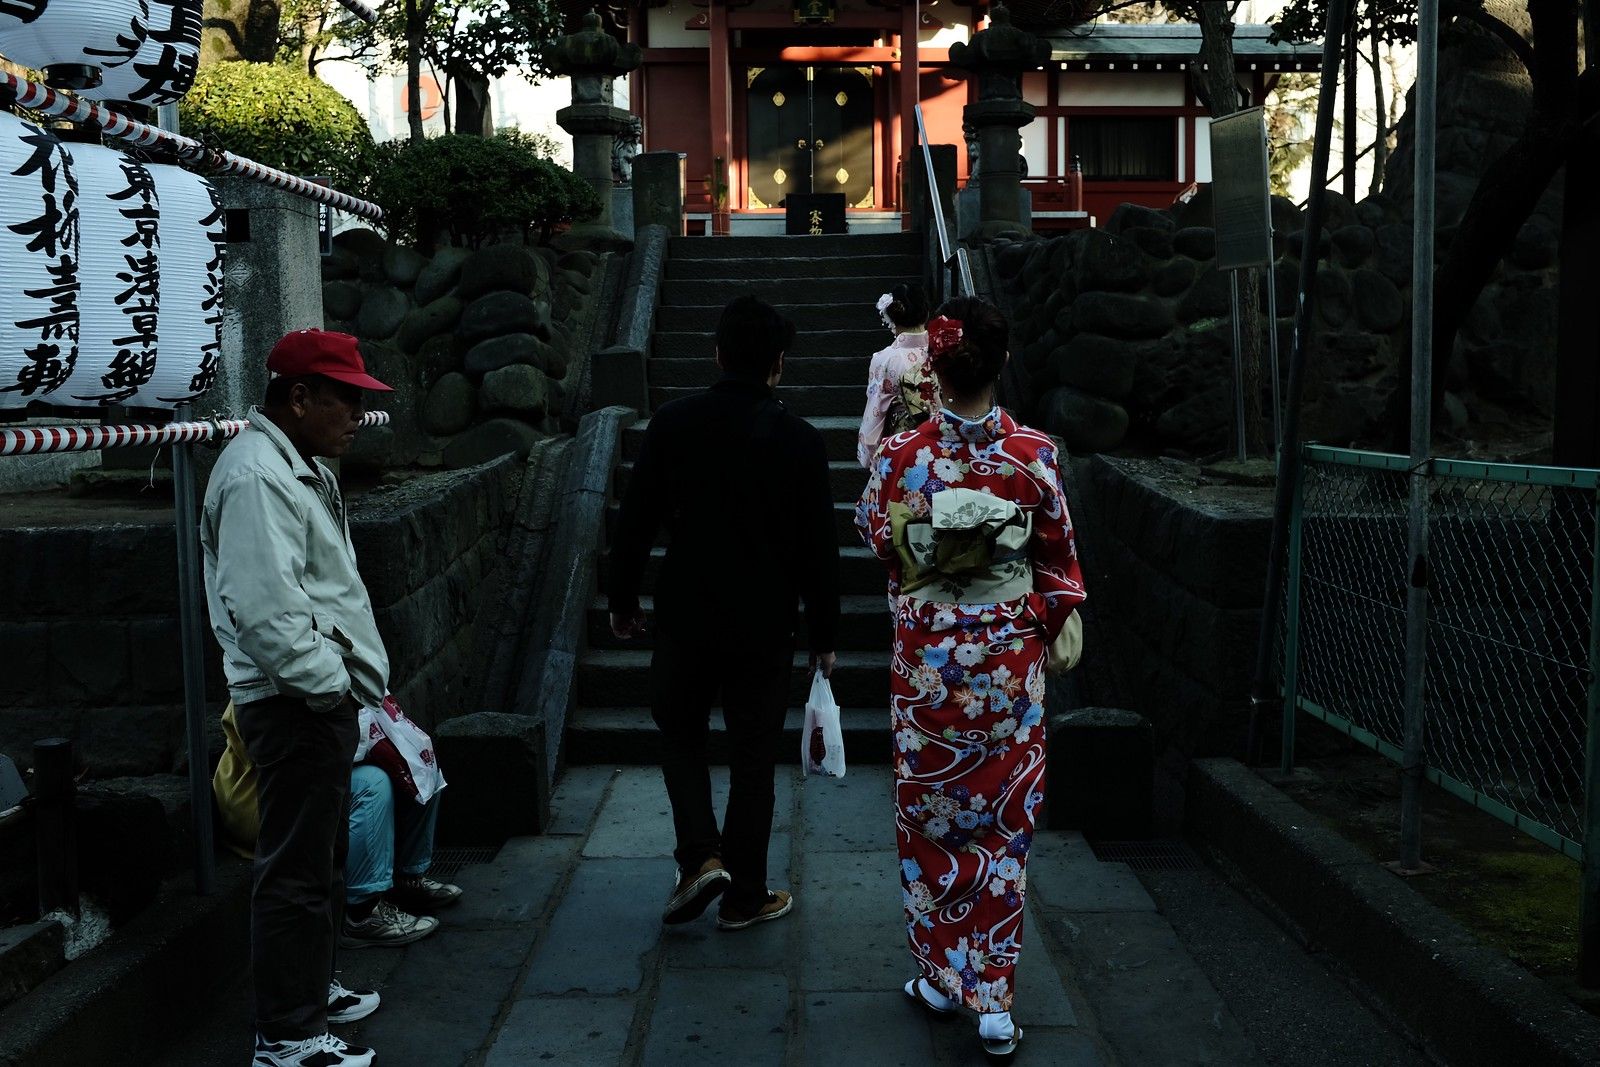 The Asakusa new year by FUJIFILM X100S.